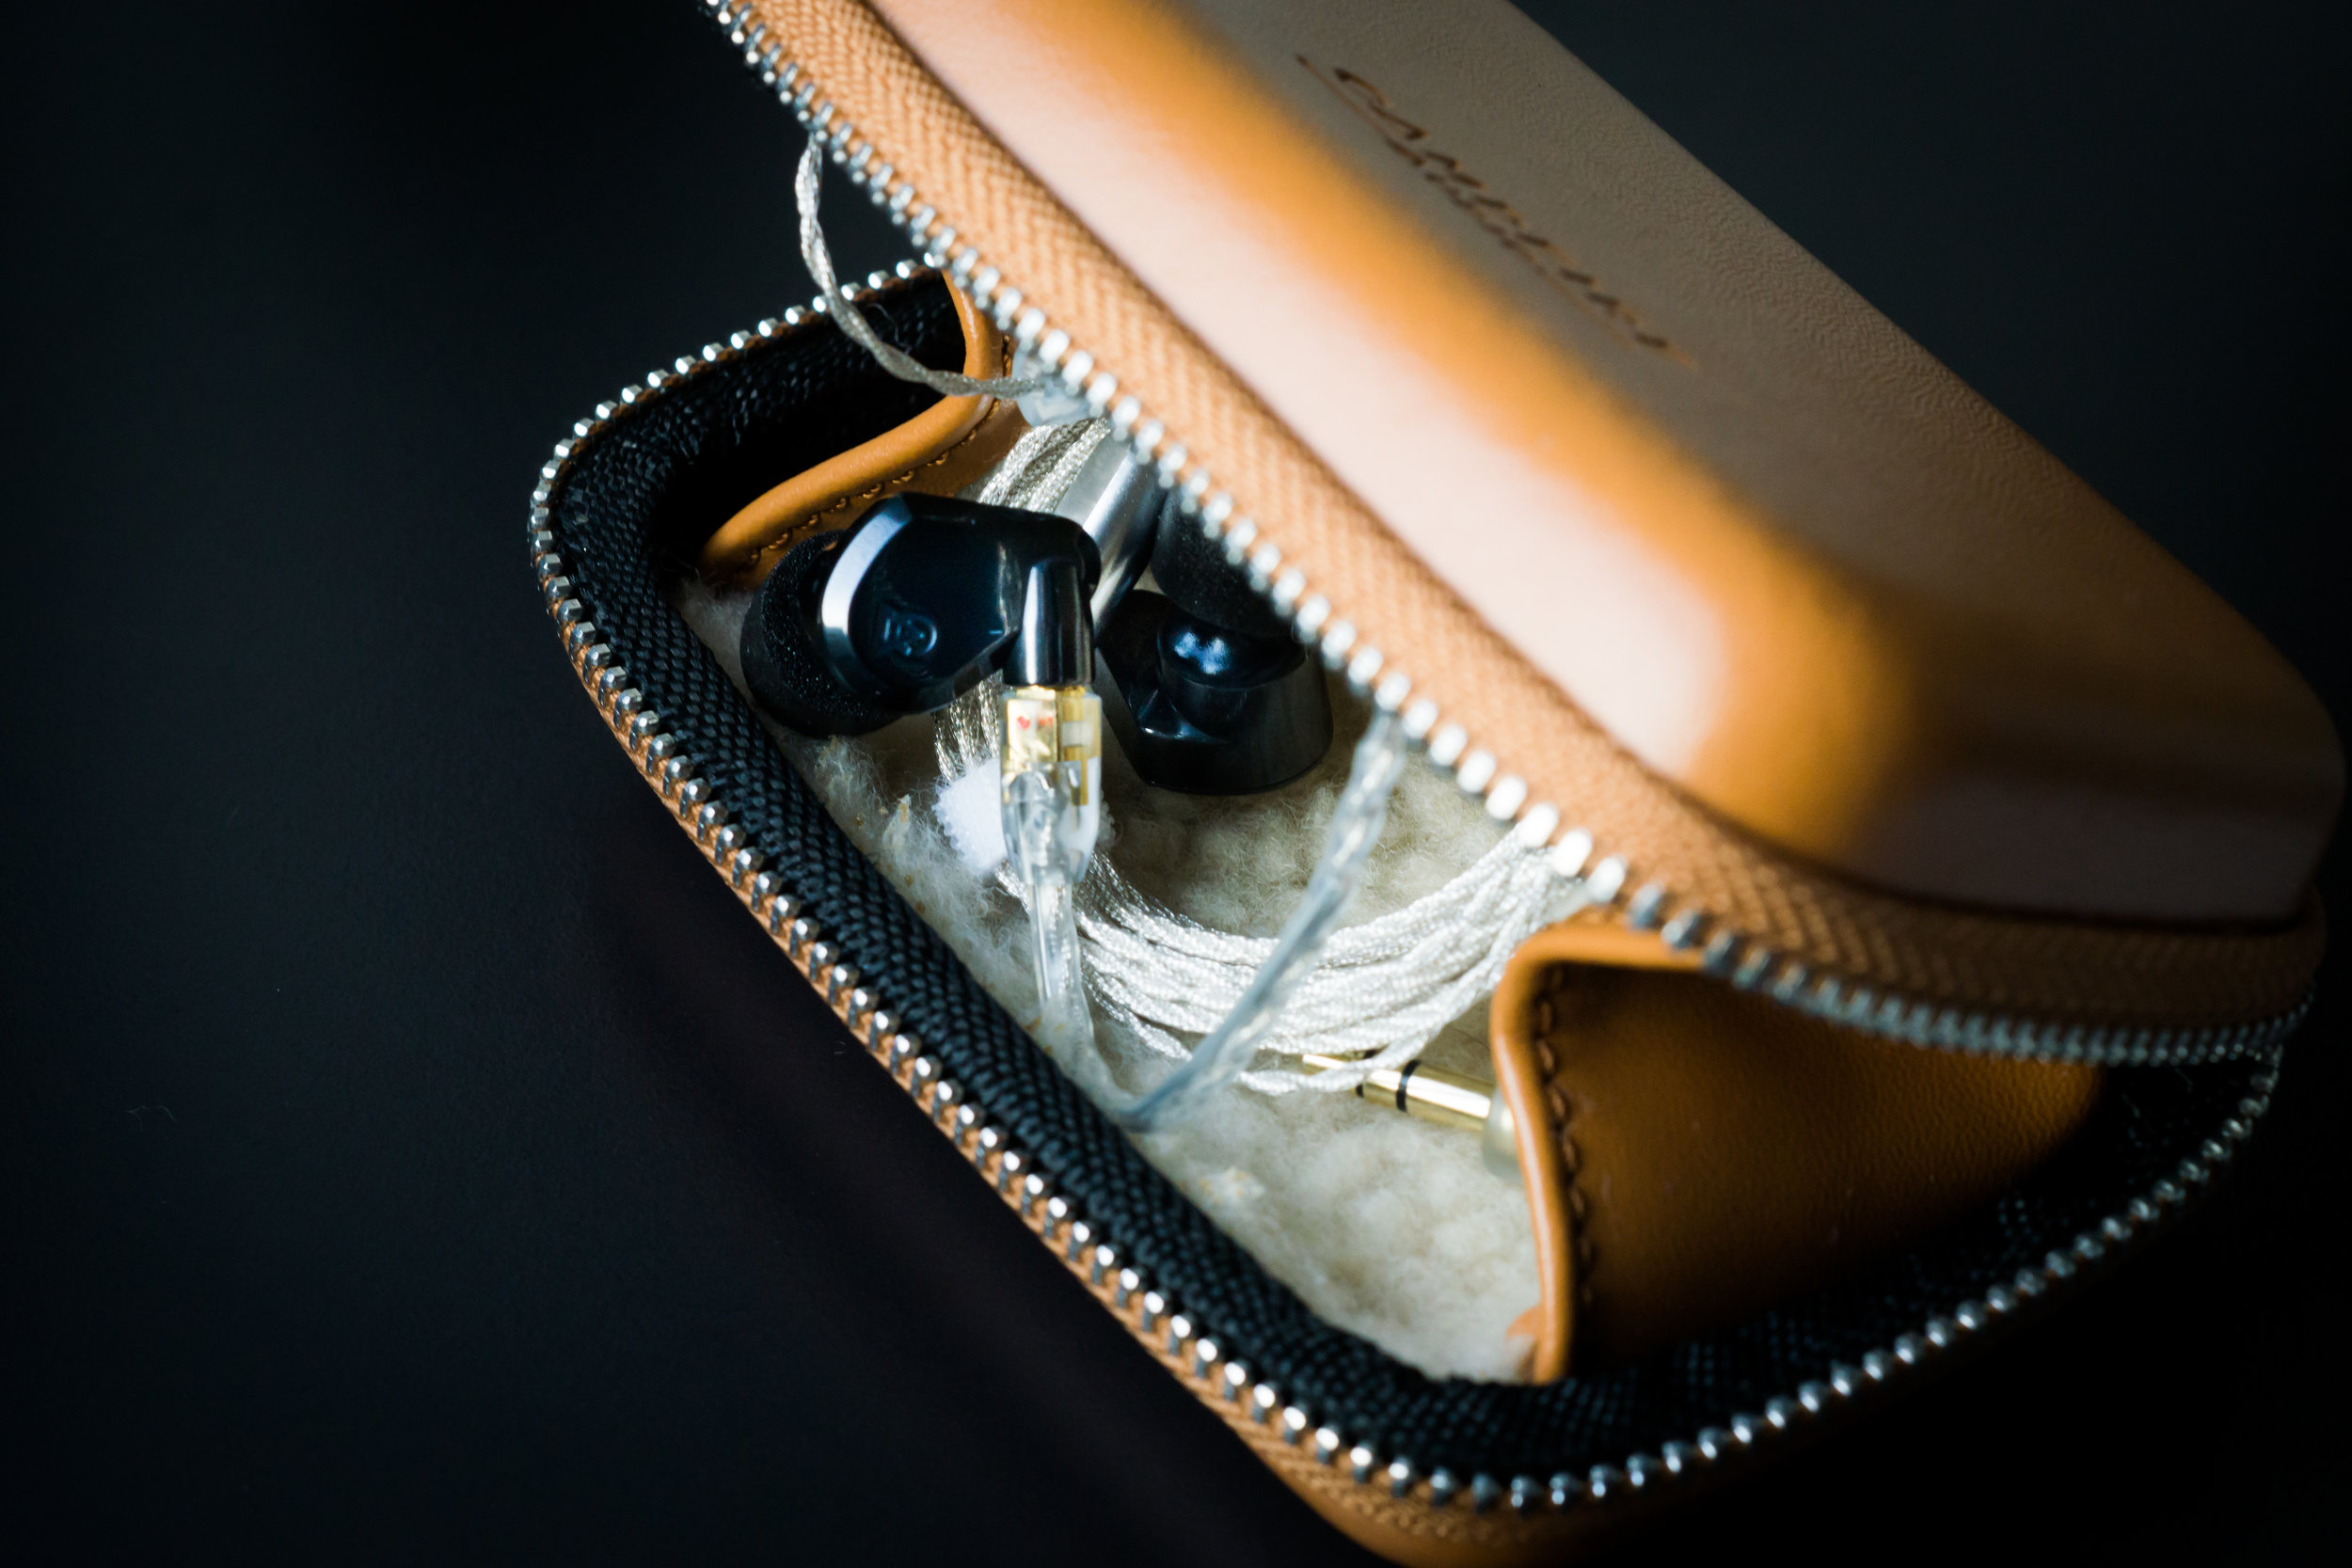 Campfire Audio Lyra - Well protected in the excellent quality earphone case.